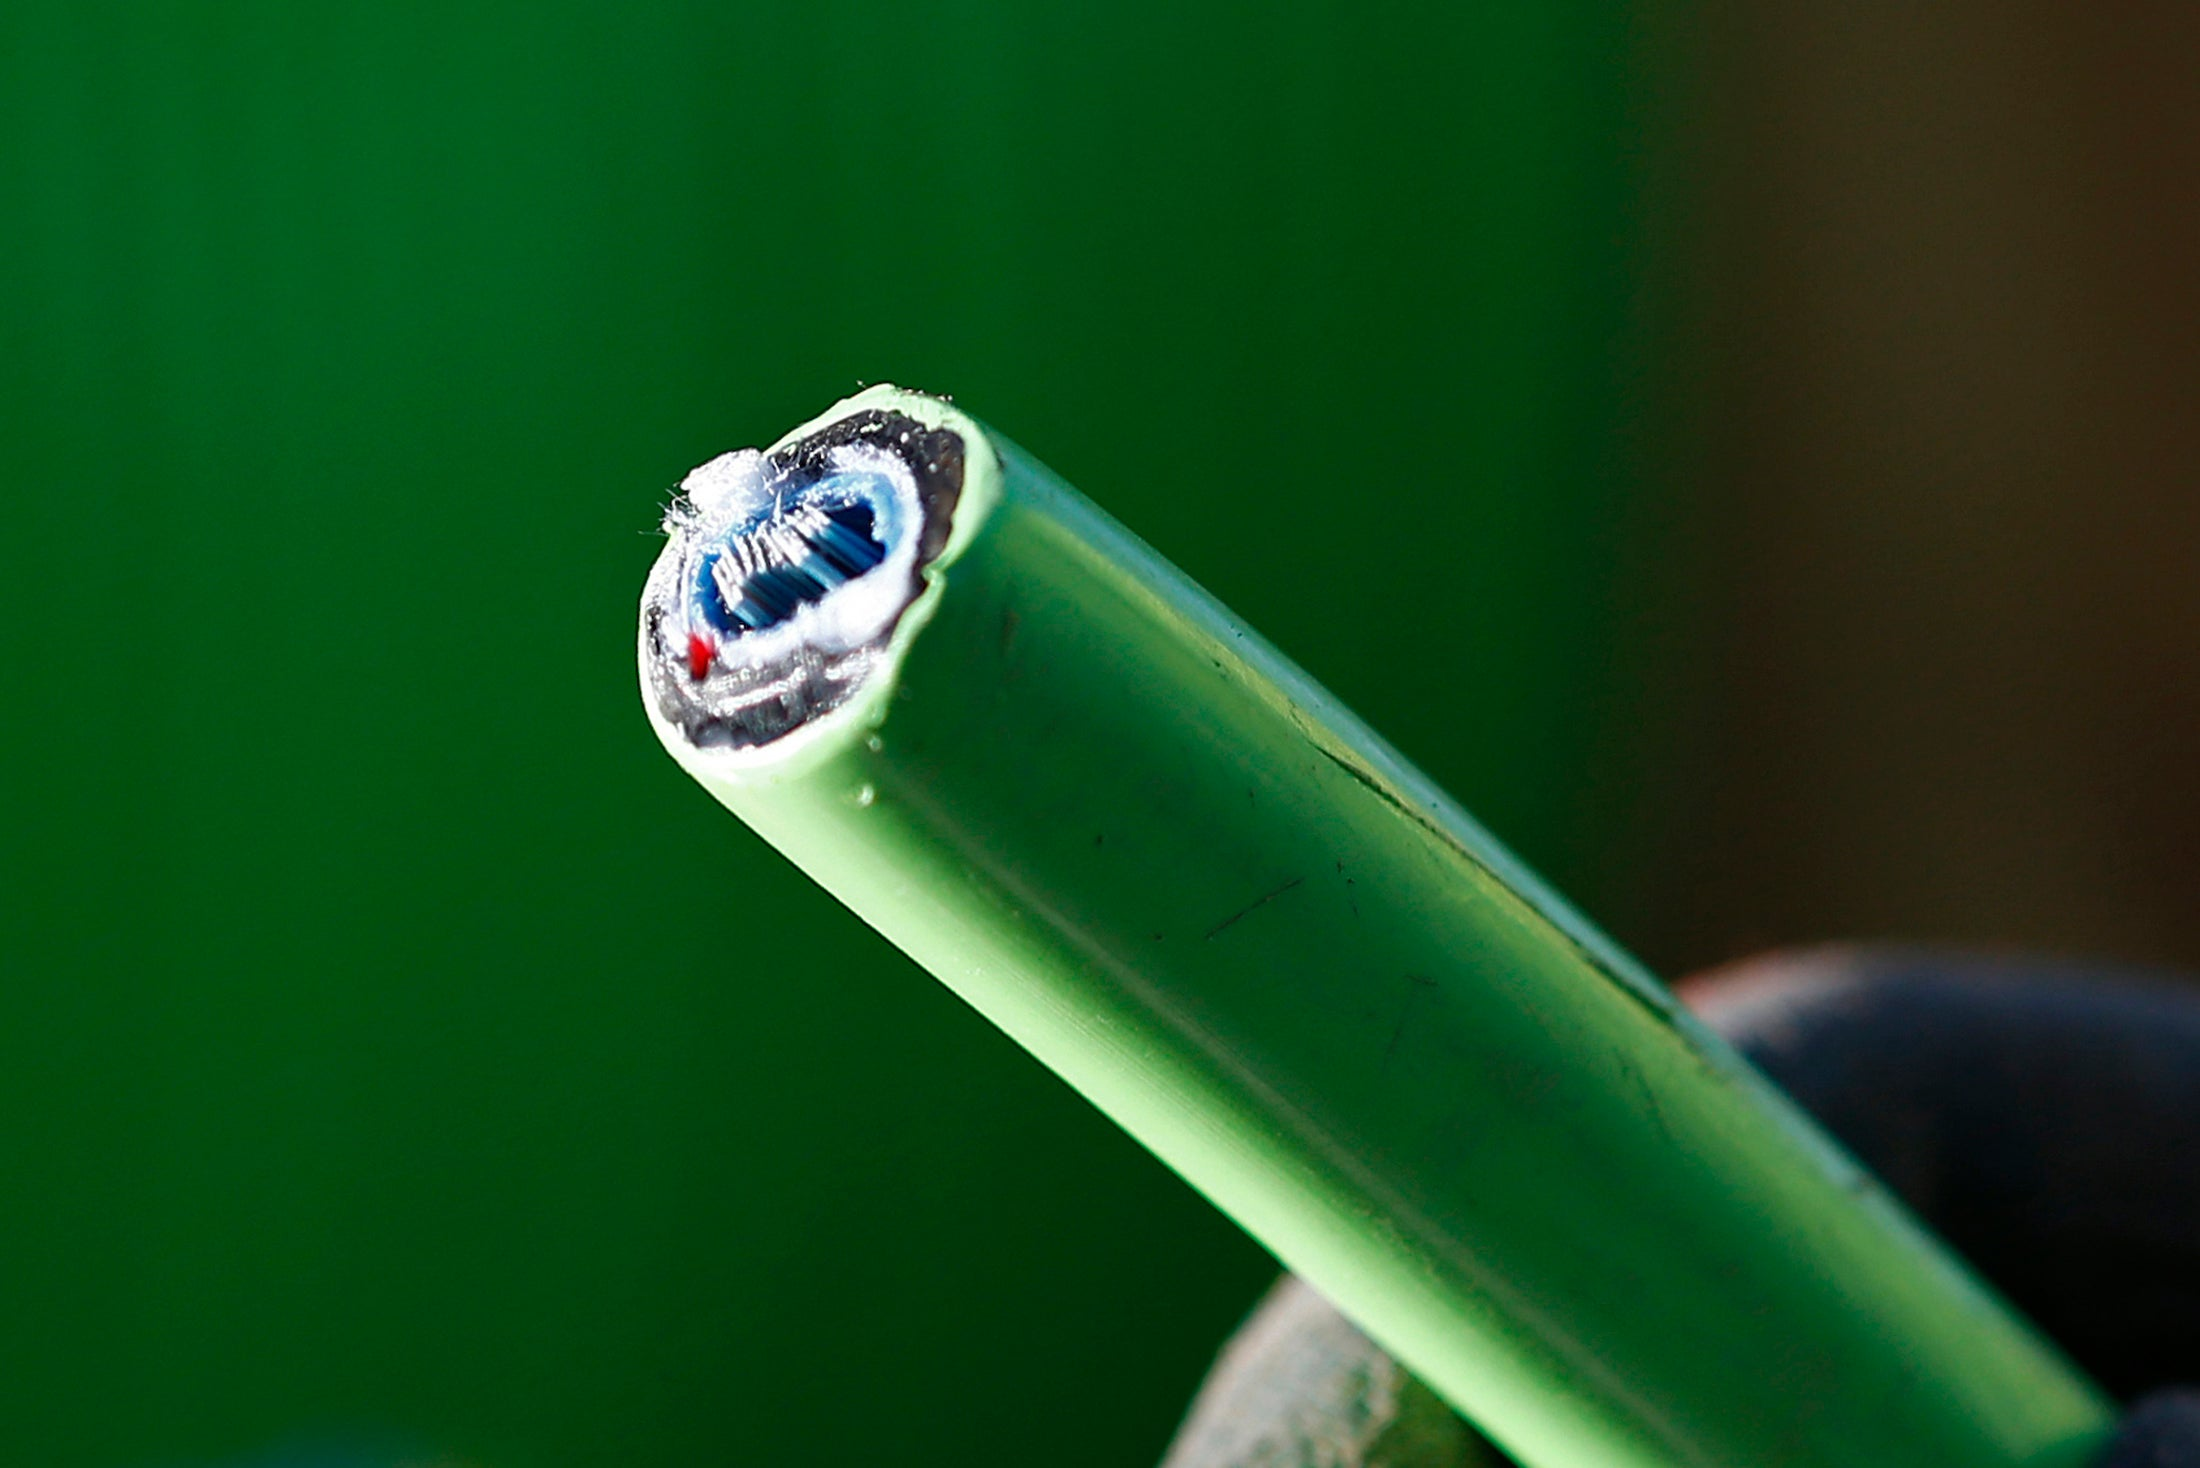 Breakthrough fibre optic technology can transfer the entire internet in a single glass strand